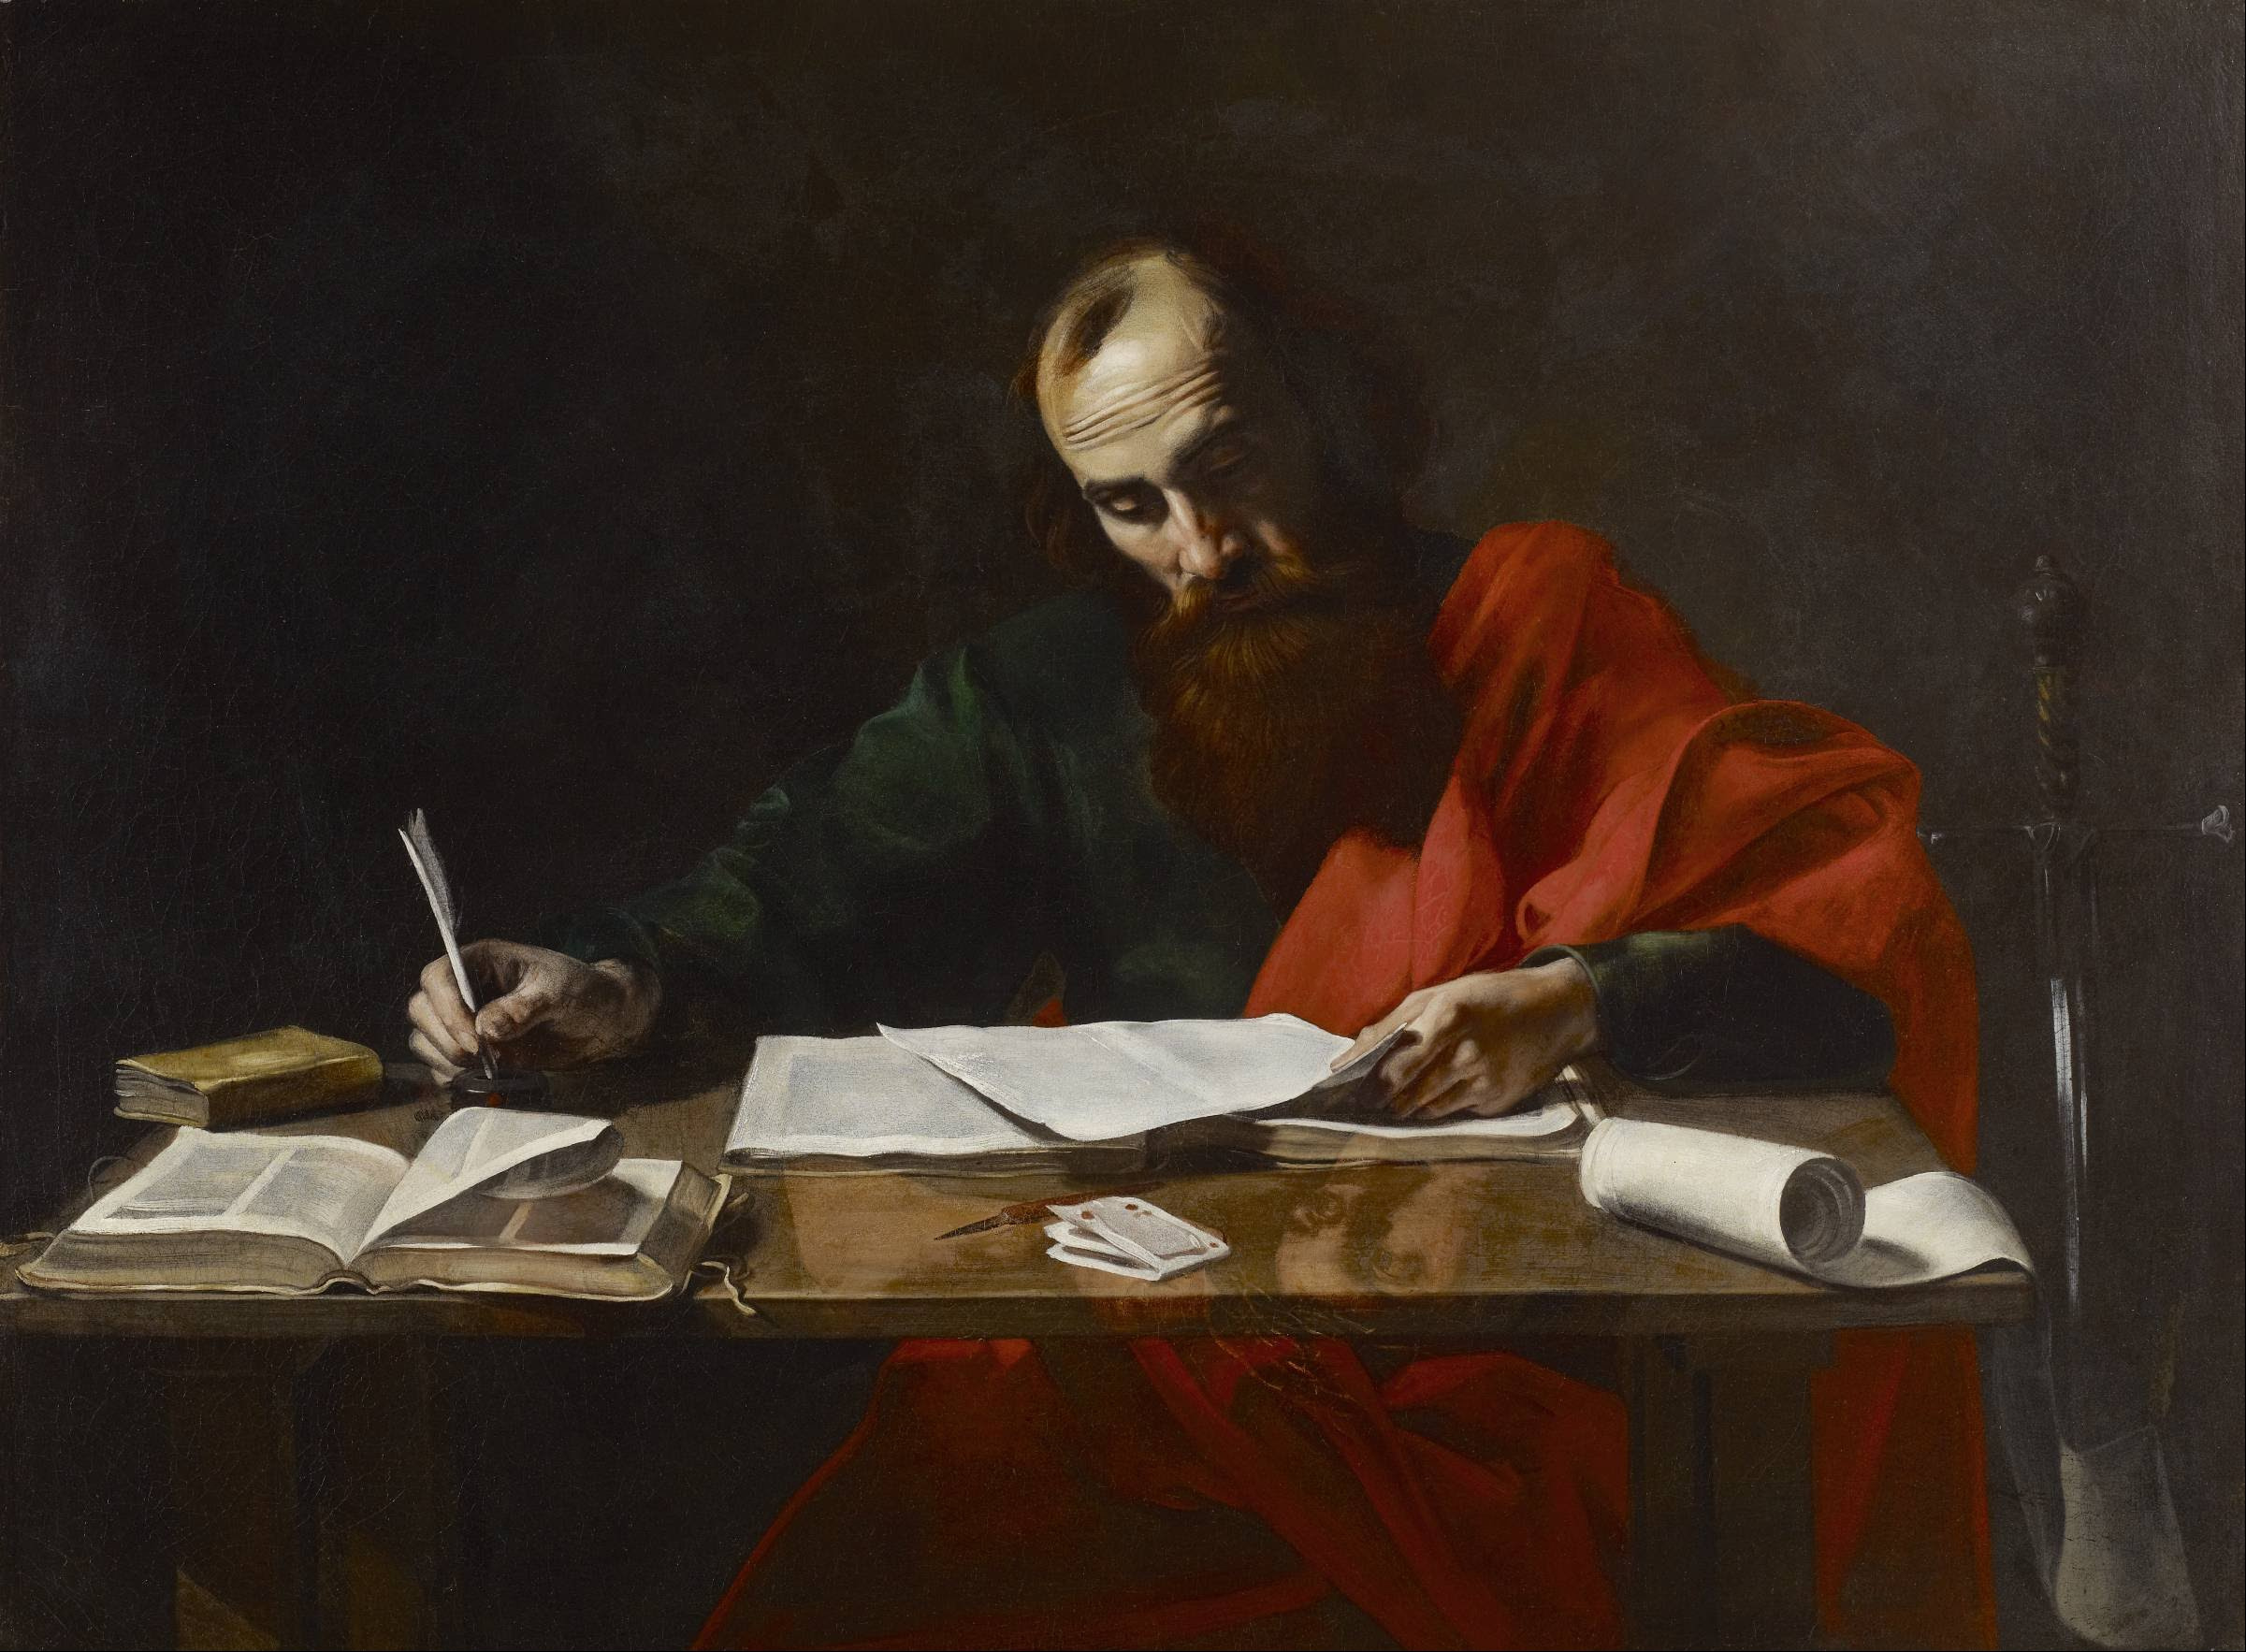 69-late-night-writing-painting-by-valentin-de-boulogne-of-saint-paul-writing-his-epistles-from-wikimedia-commons.jpg